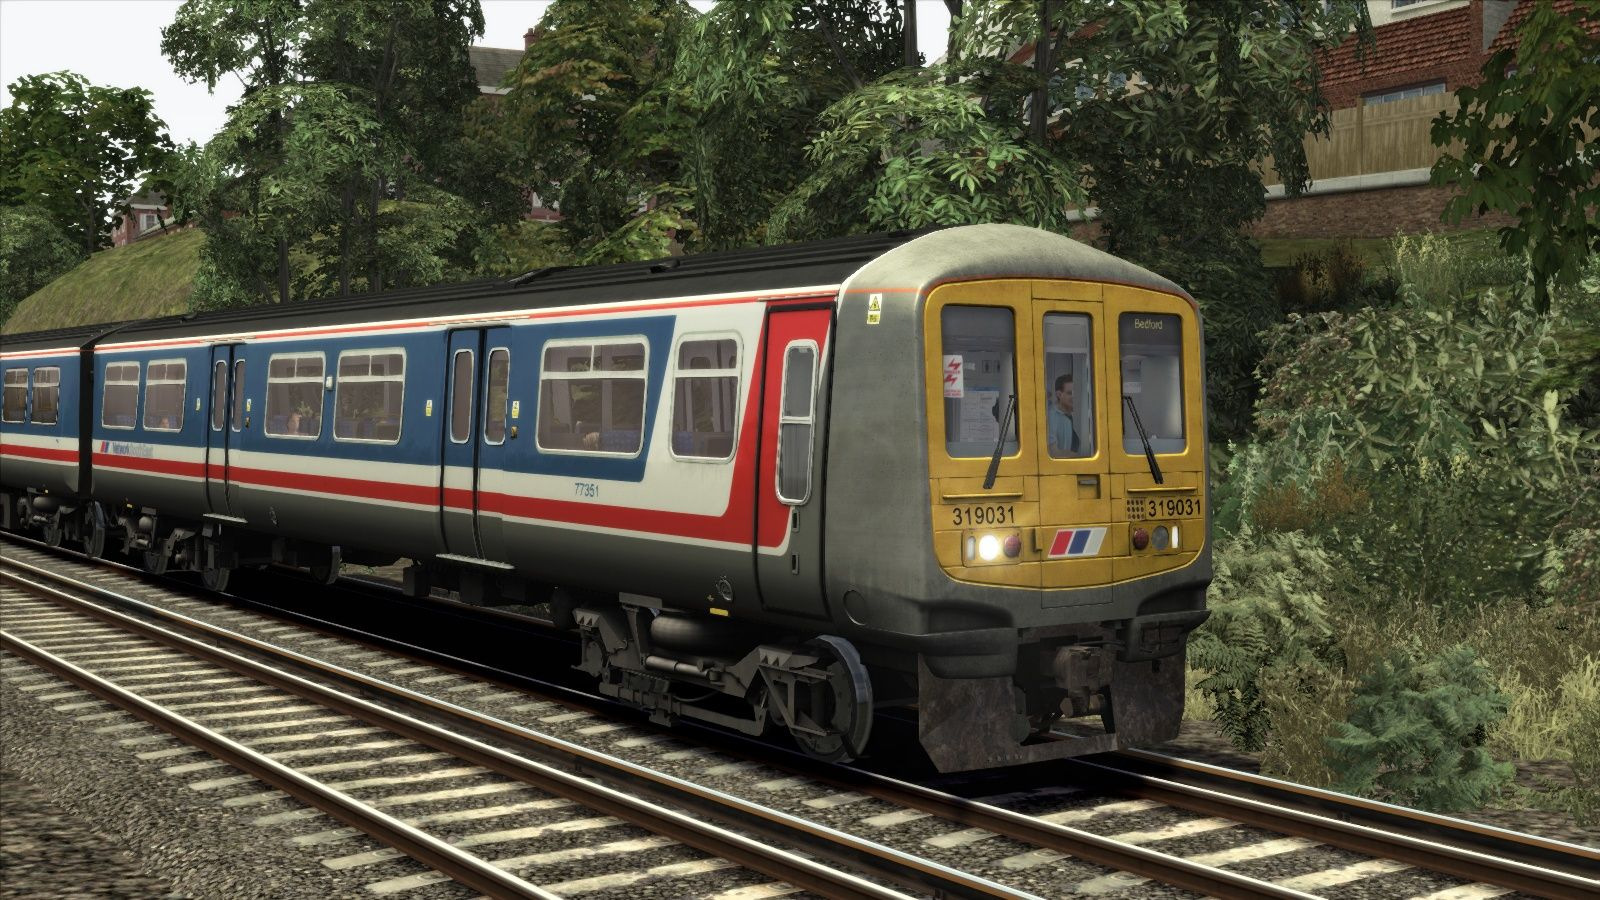 Image showing screenshot of the Network South East Class 319 Add-on Livery on the TS Marketplace